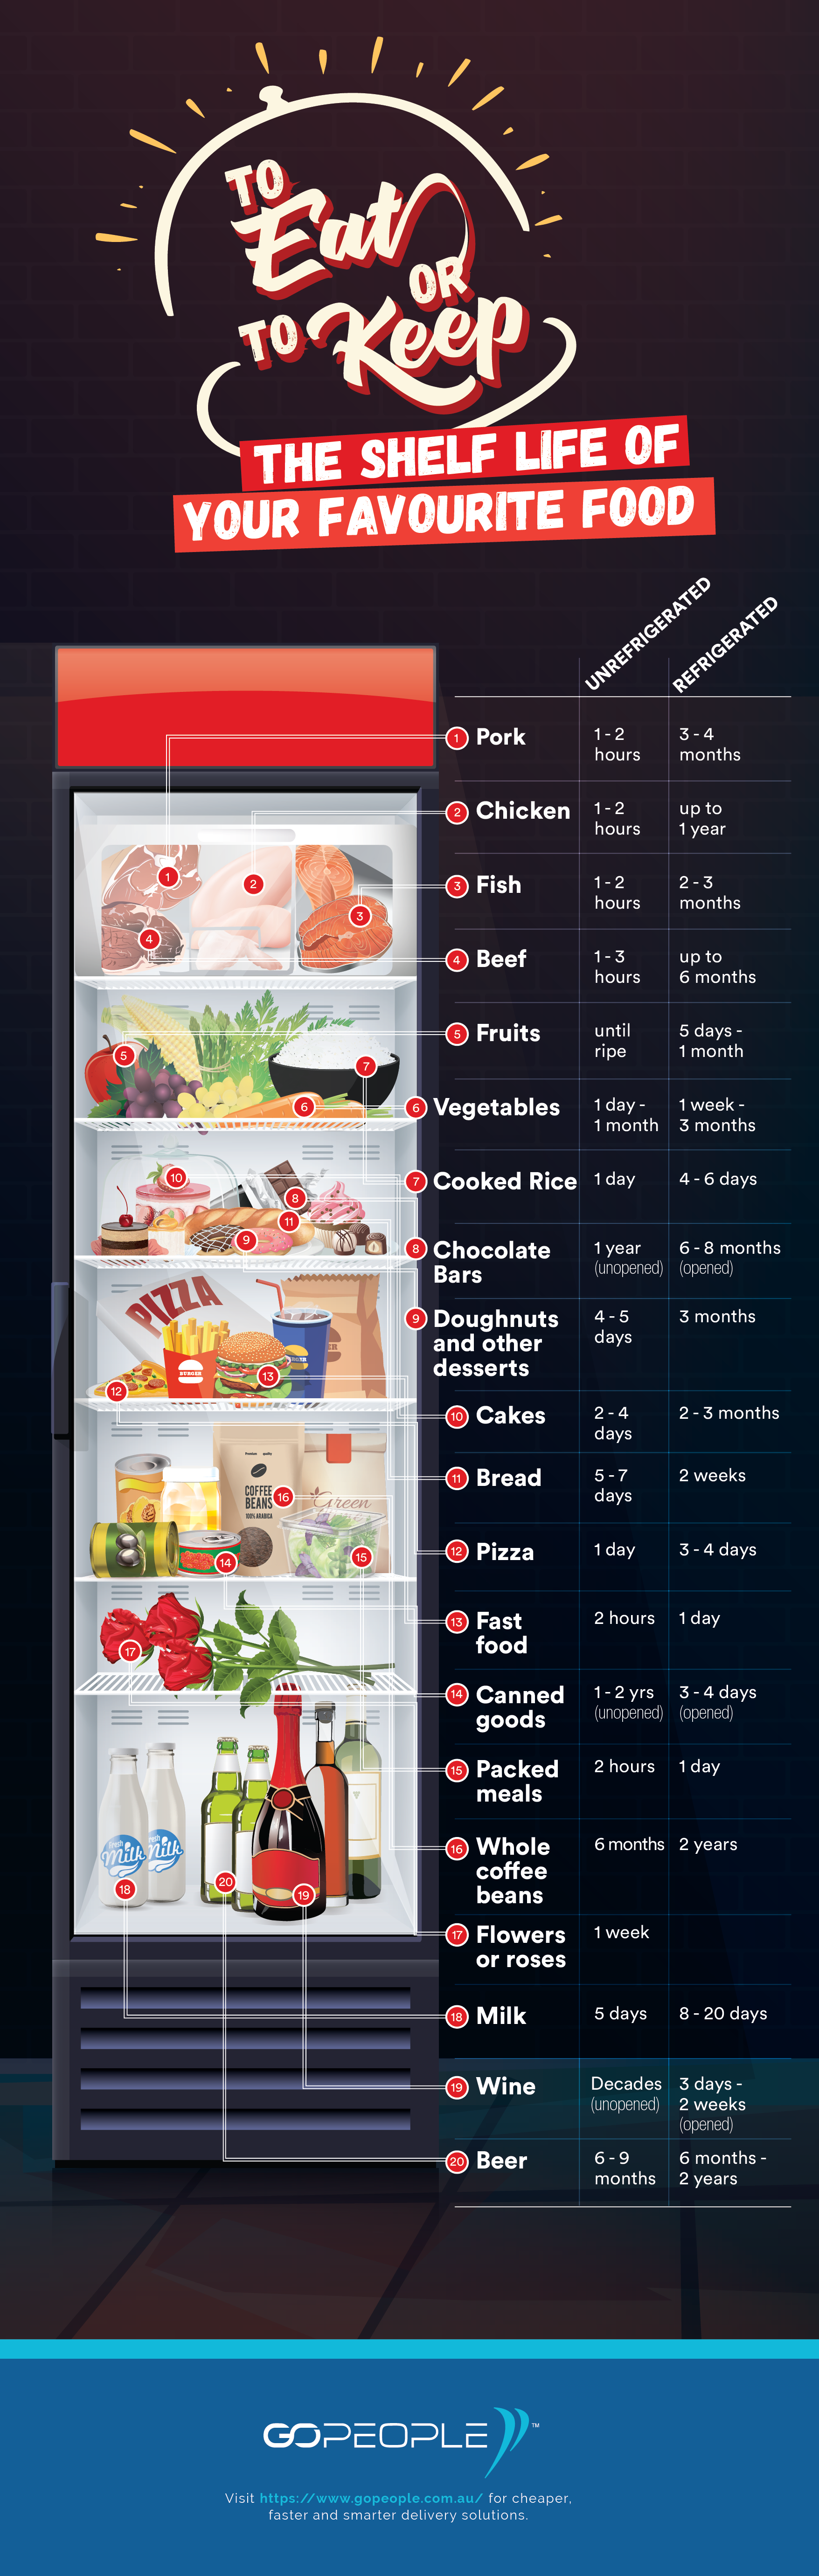 To Eat or To Keep: The Shelf Life of Your Favorite Goods